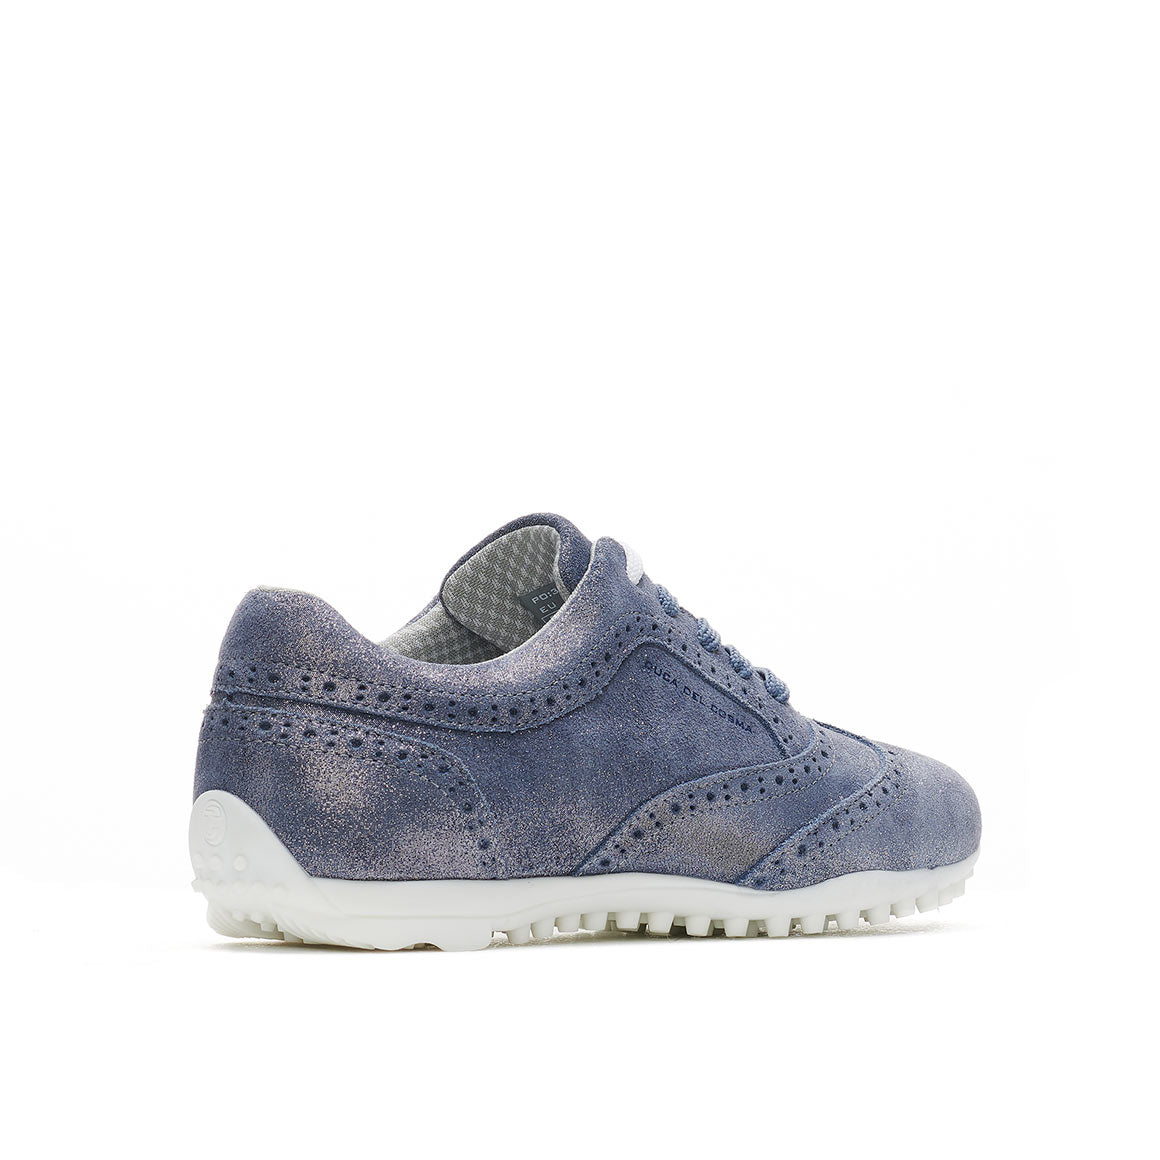 Women's Rhapsody Navy Sparkling Golf Shoe